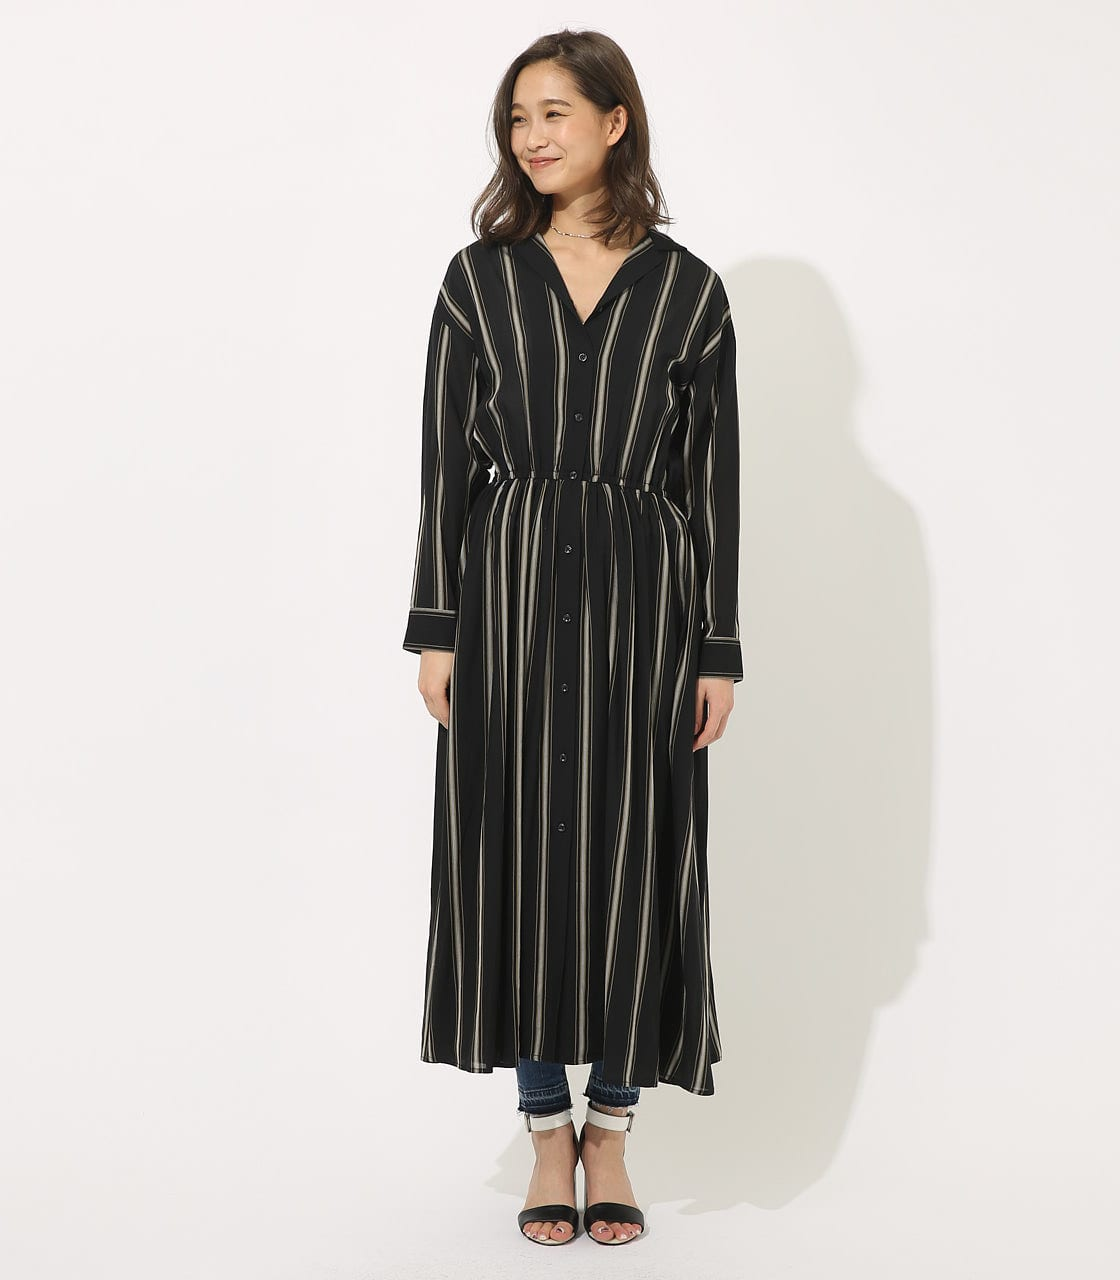 【AZUL BY MOUSSY】BROWSING MAXI ONEPIECE 【MOOK49掲載 90037】 詳細画像 柄BLK 4